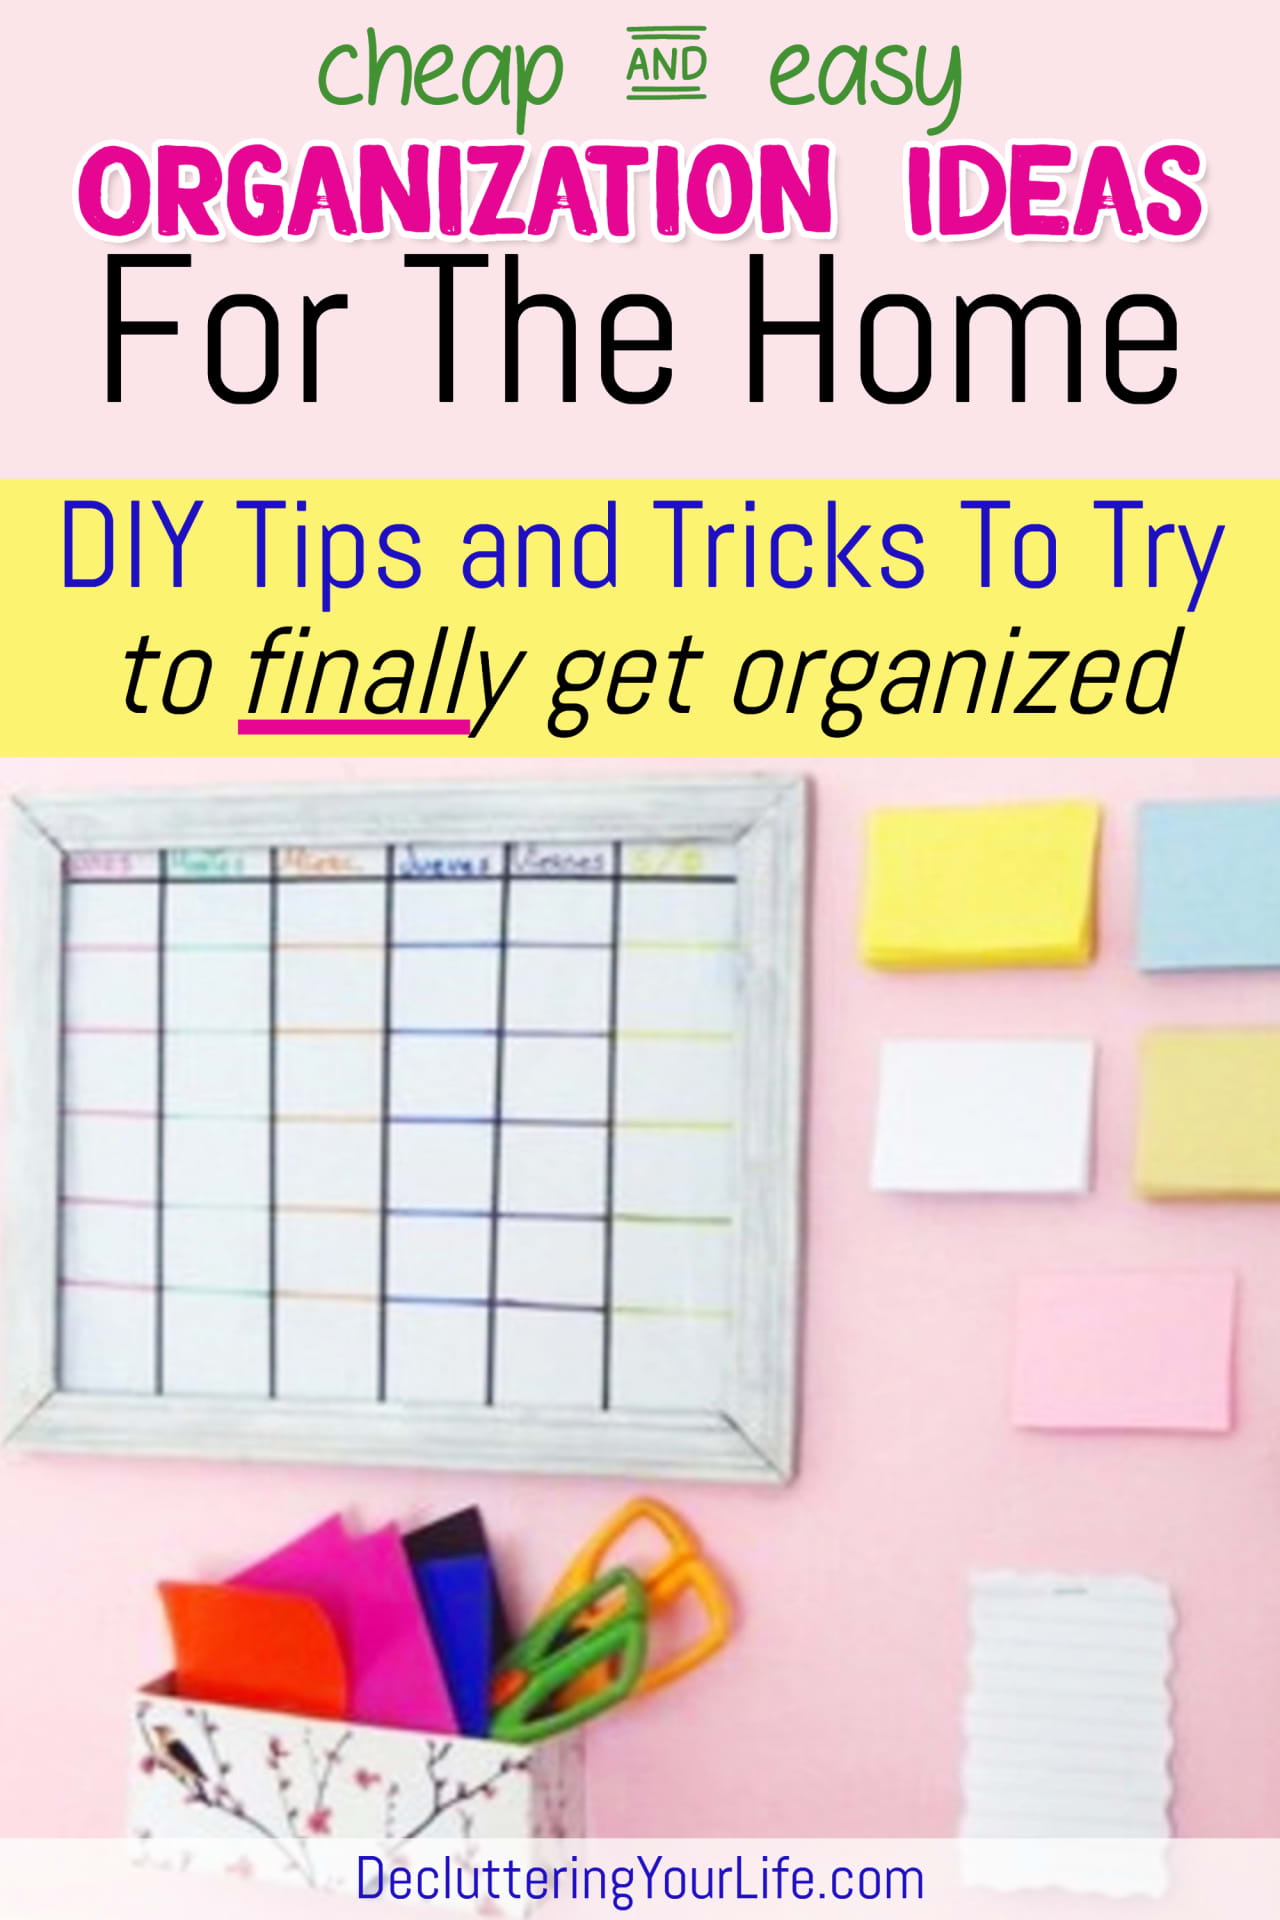 Cheap & Easy Organization Ideas for the Home DIY Tips, Tricks and Organization HACKS to try to finally GET organized and STAY organized (even if you're on a budget).  Trying to organize clutter and have TOO MUCH STUFF - but don't have the budget to BUY storage and organizers?  Try these budget-friendly home organizing DIY projects and cheap Dollar Store organizing hacks - fun, easy and they WORK!